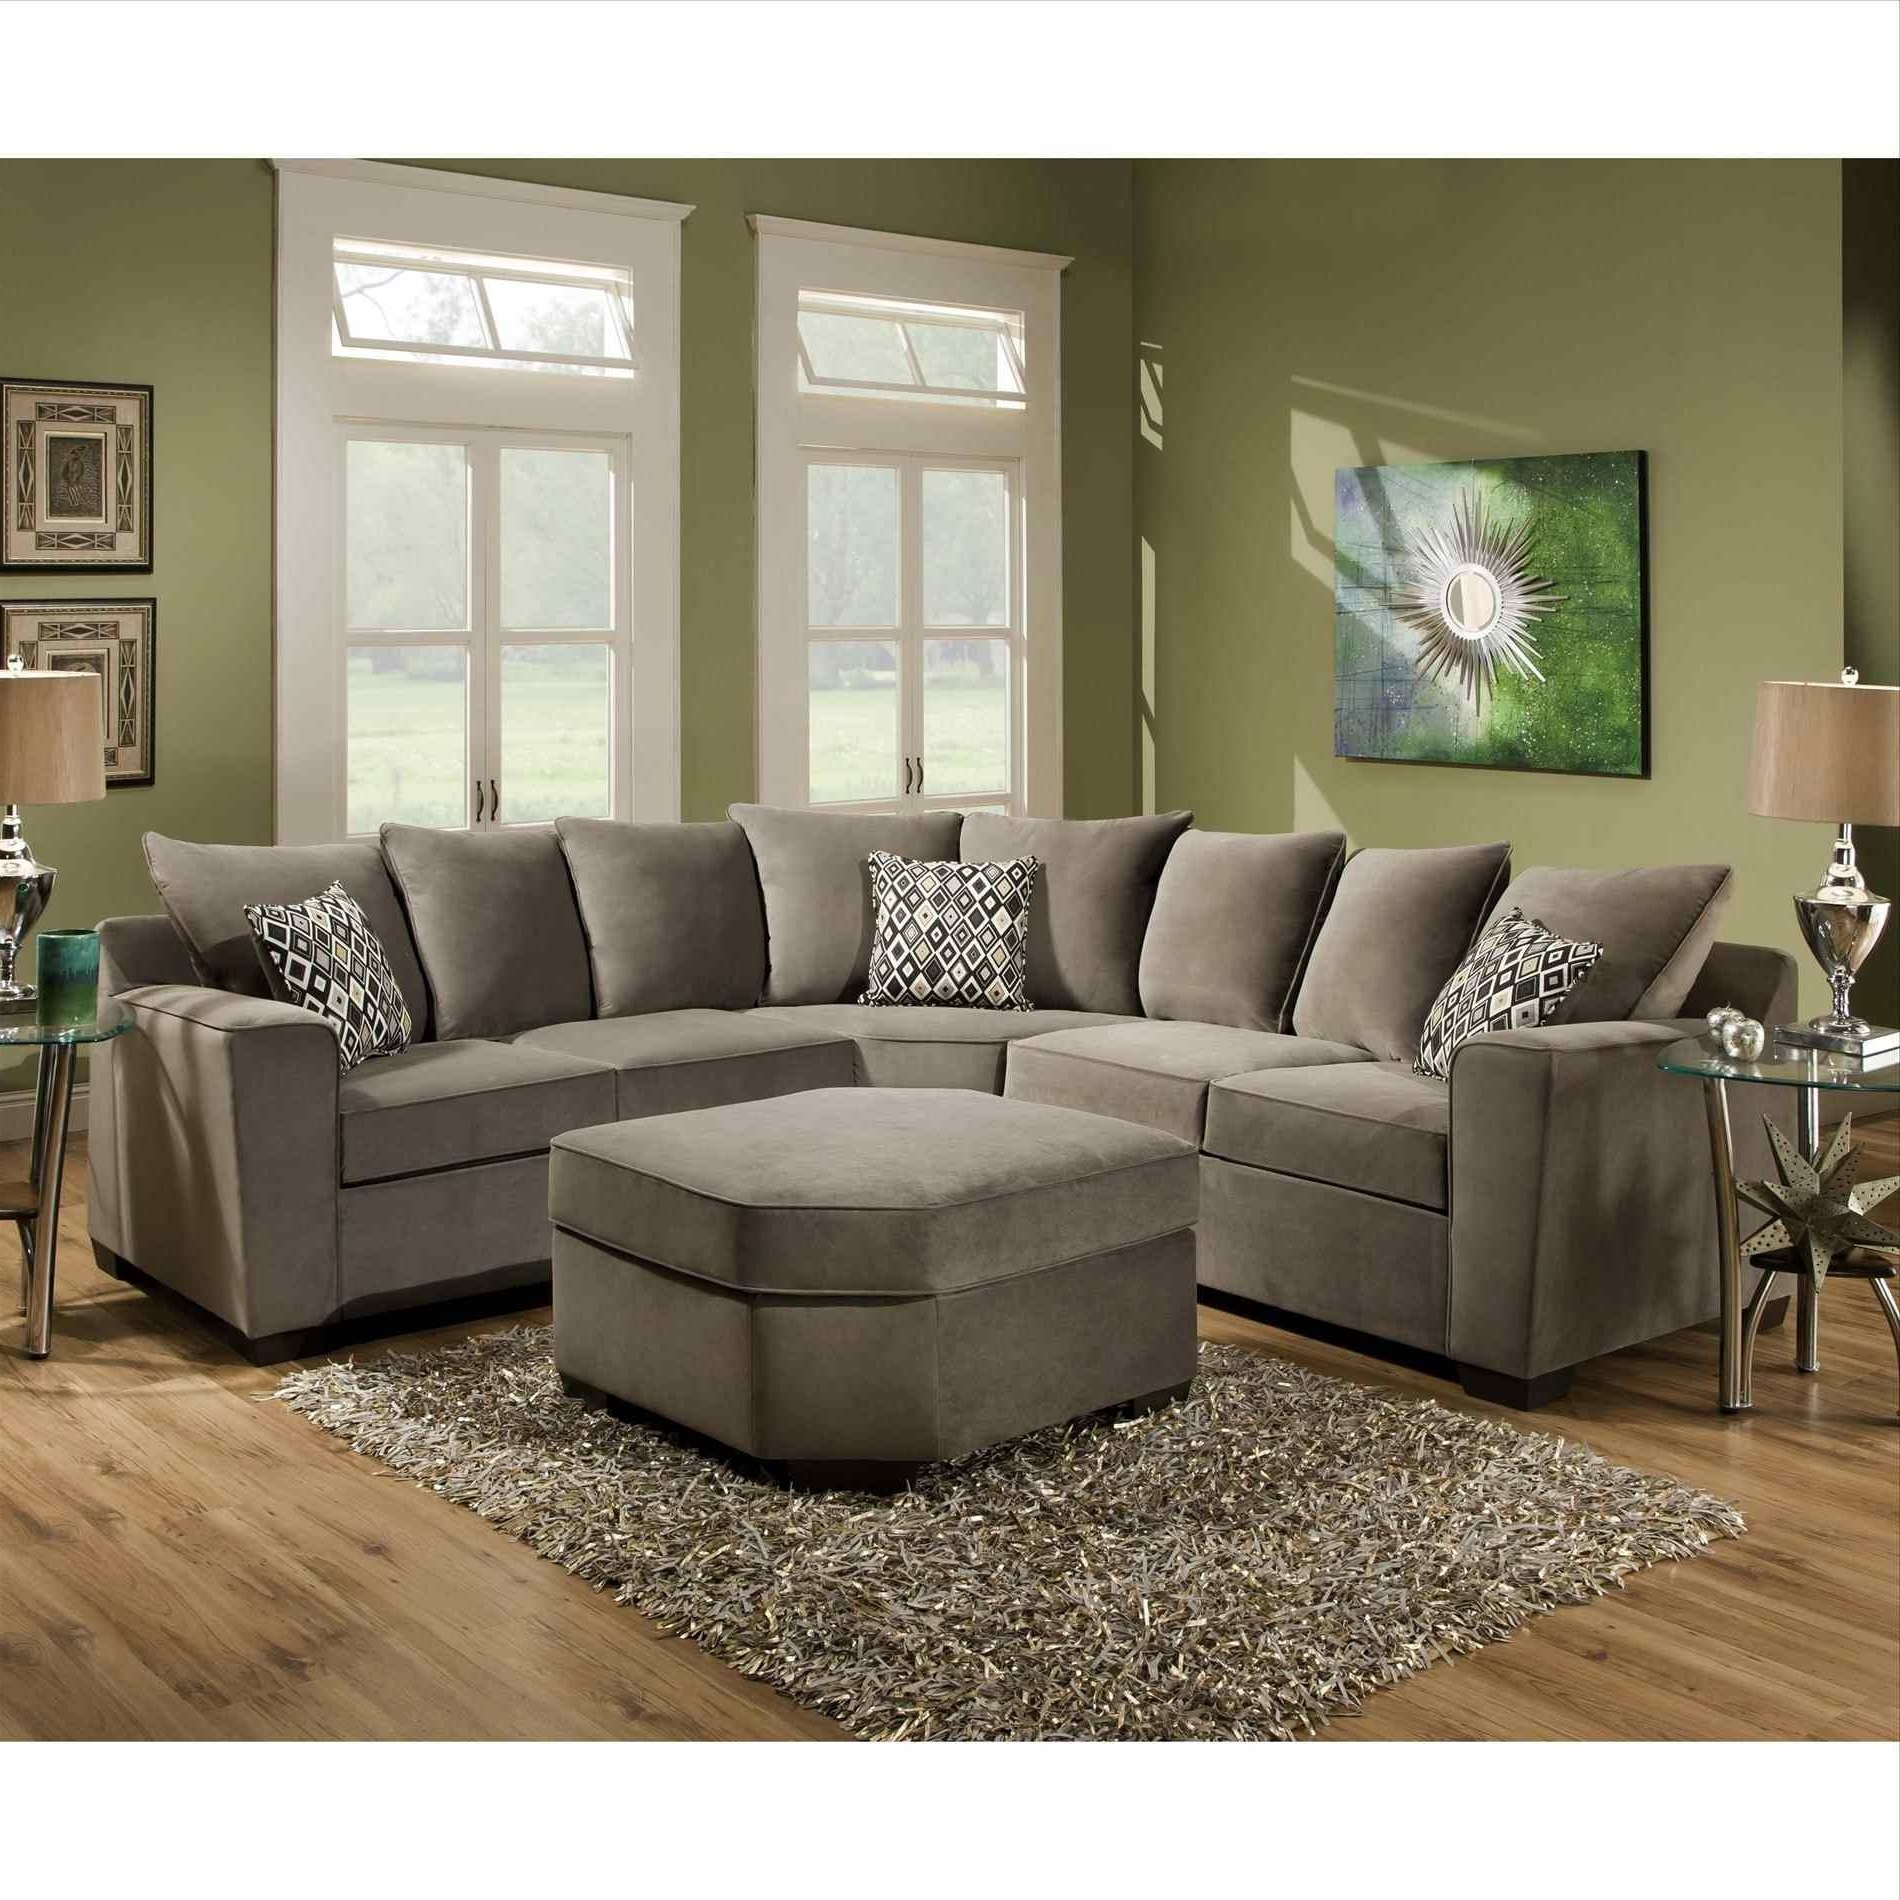 Sectional Sofas At Bad Boy With Newest Couch Furniture Es Wrap Around